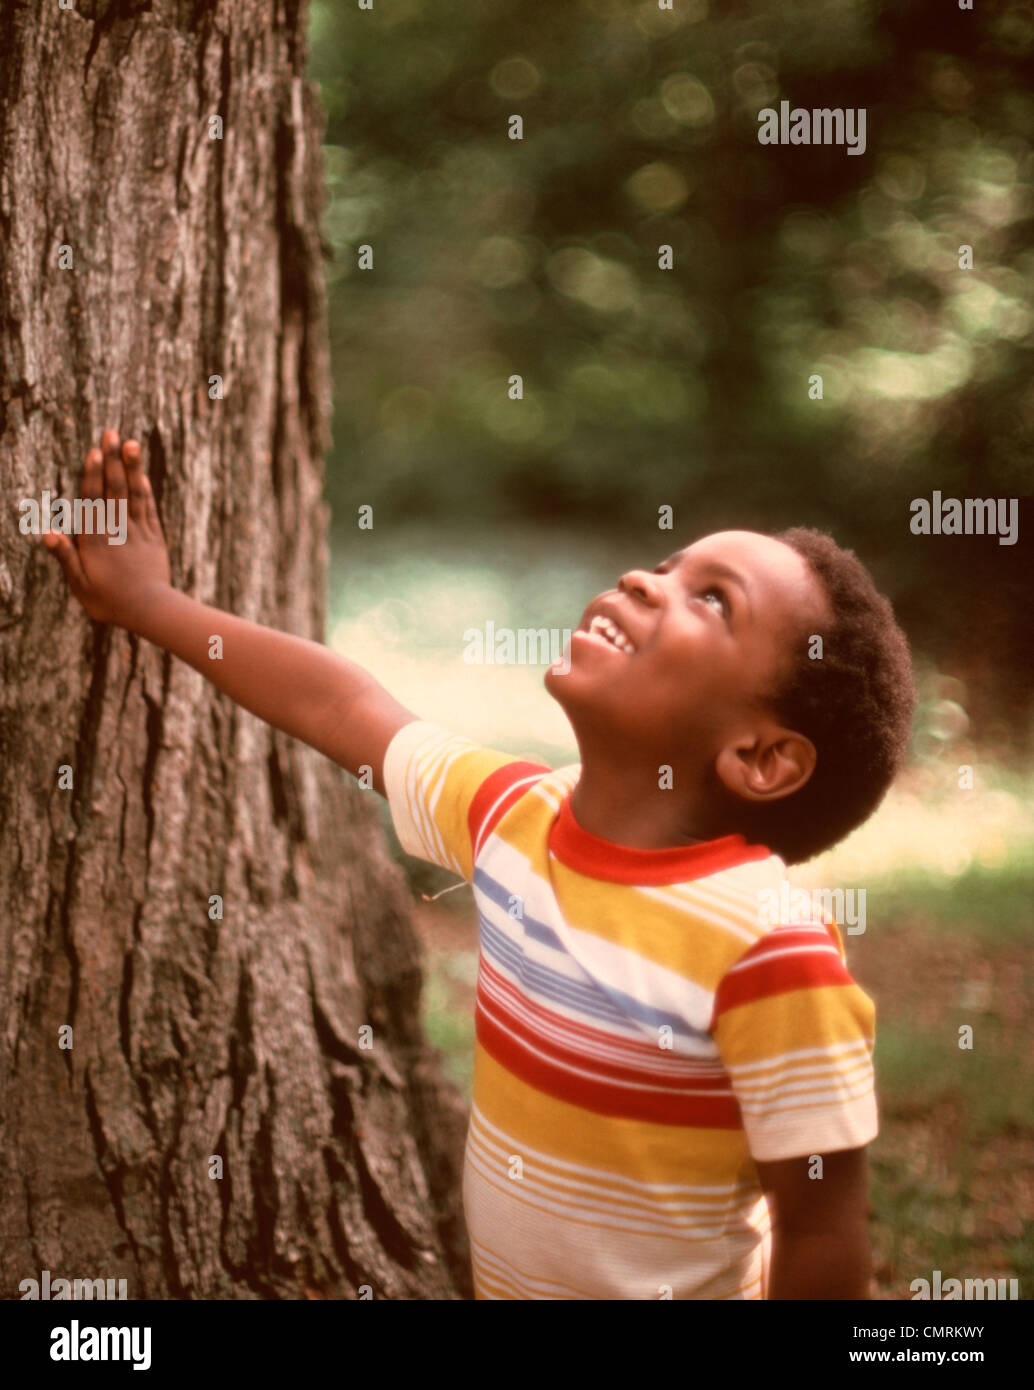 Child with attentive look stock image. Image of toddler